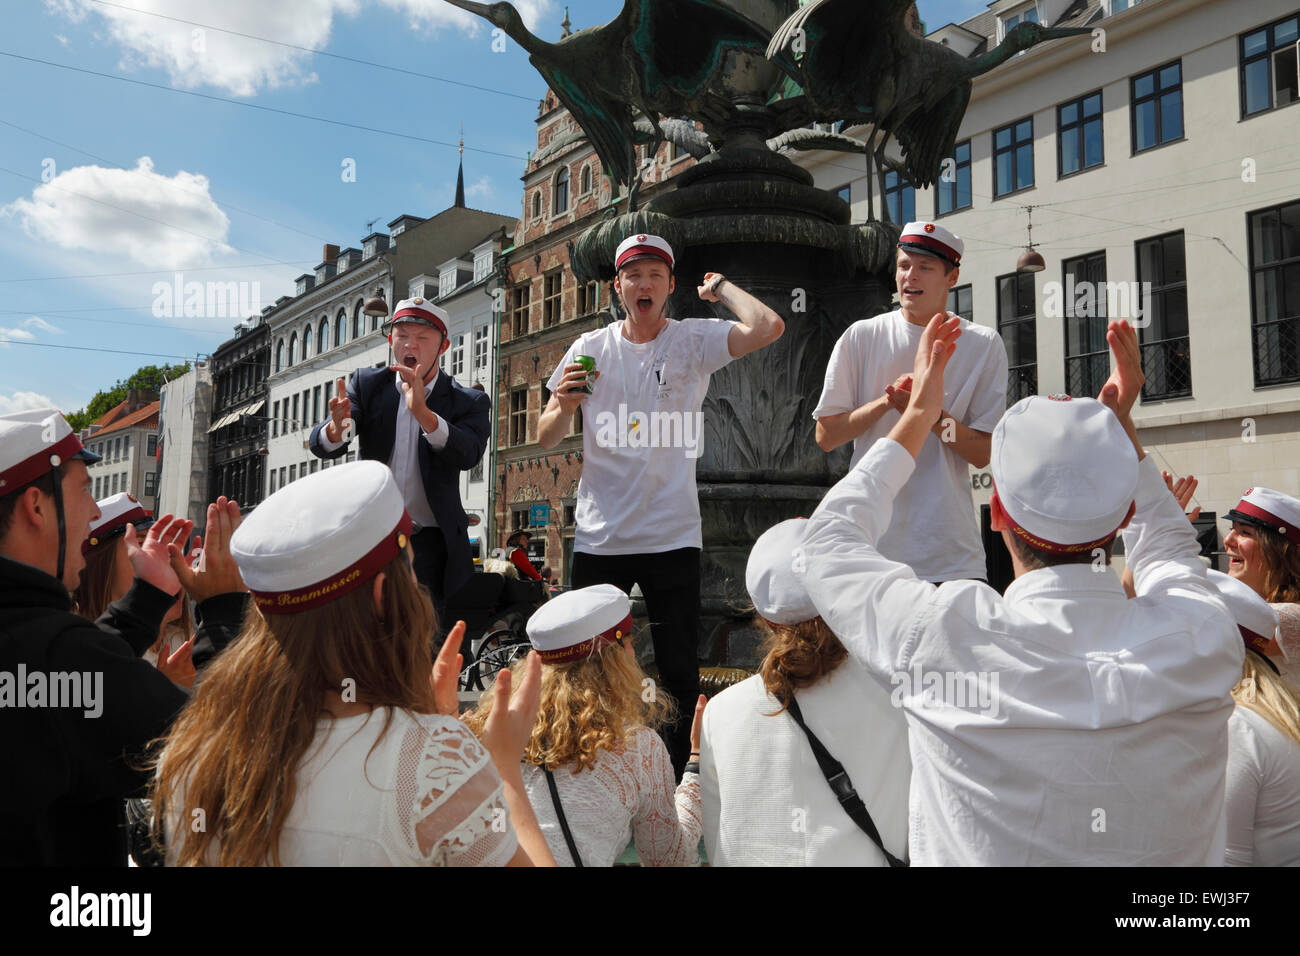 Copenhagen, Denmark. June 26, 2015. Danish students celebrate their high school graduation. A dance around and a - Stock Image